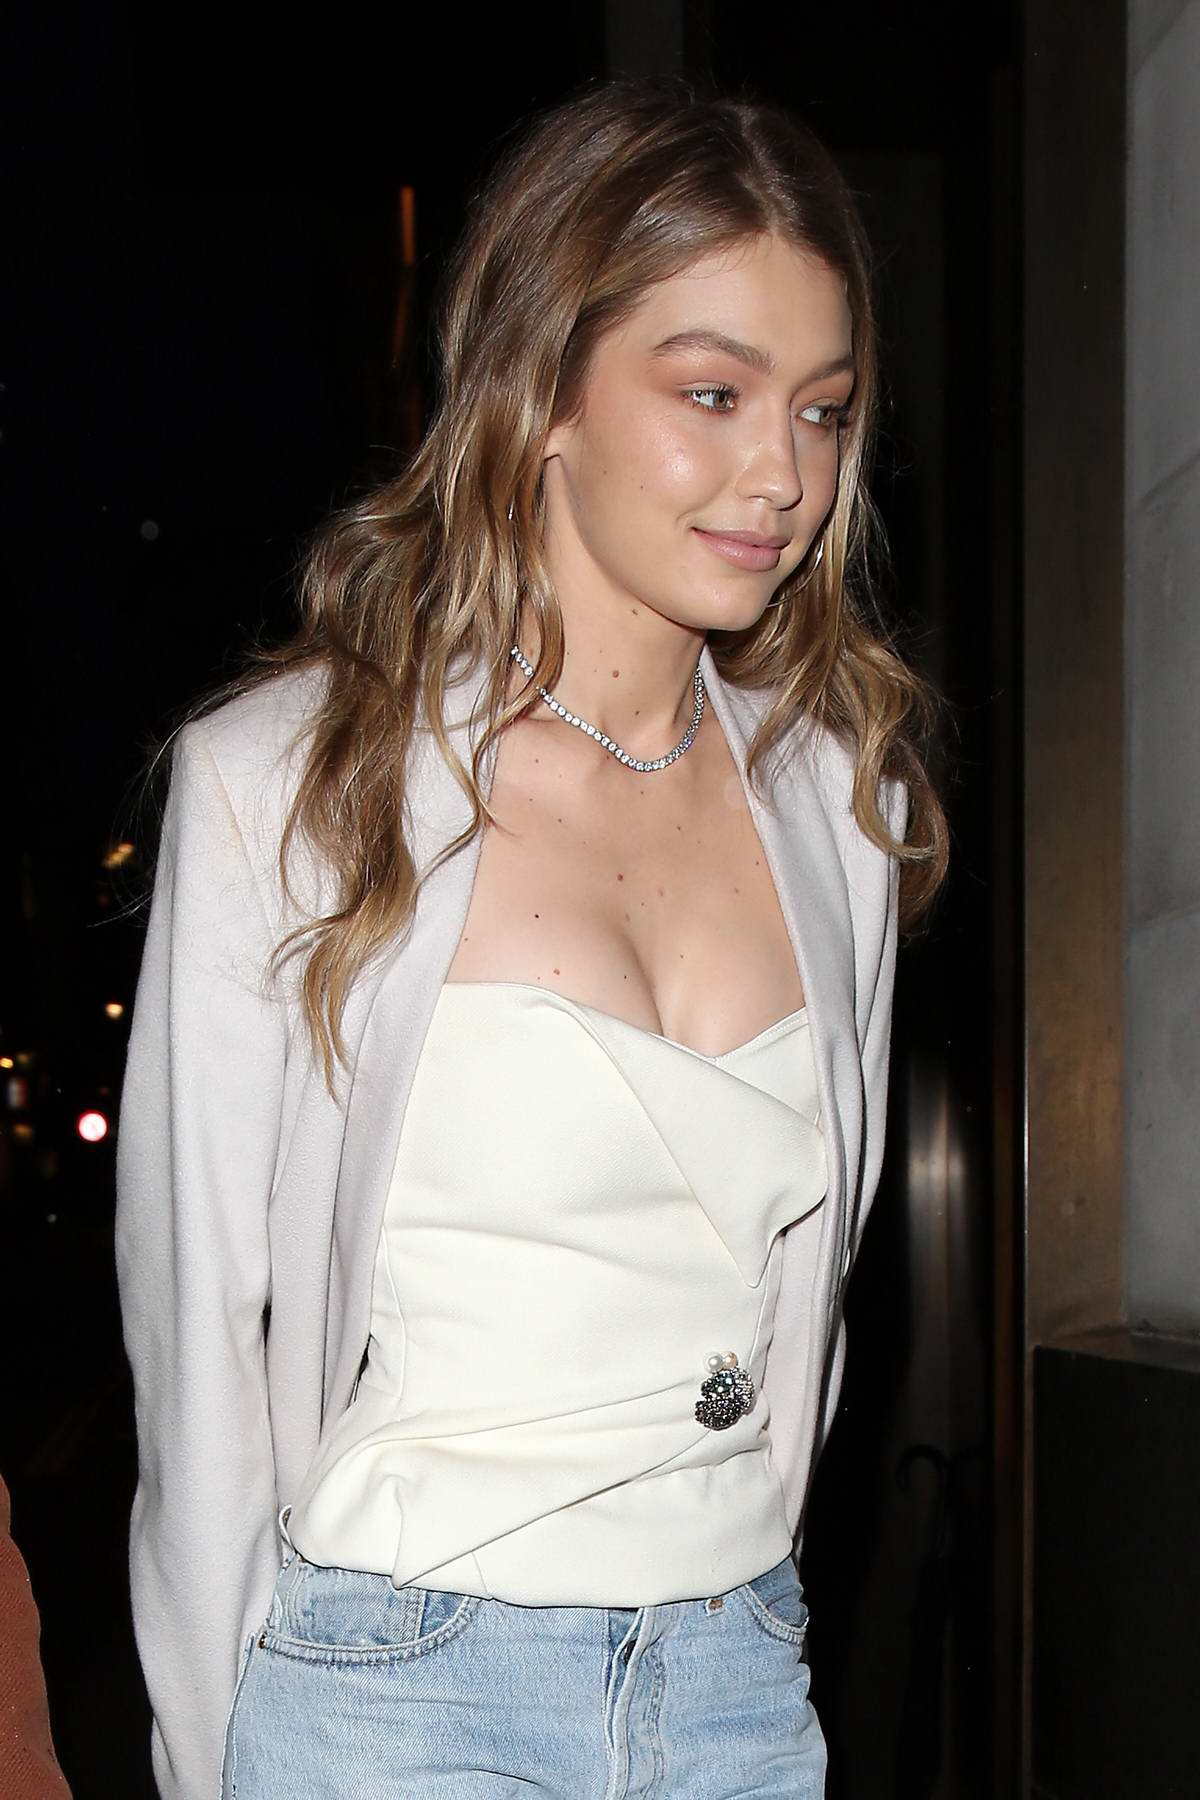 Gigi Hadid seen at the 'Gigi Hotel', a pop-up venue for her Gigi X Maybelline VIP party in London